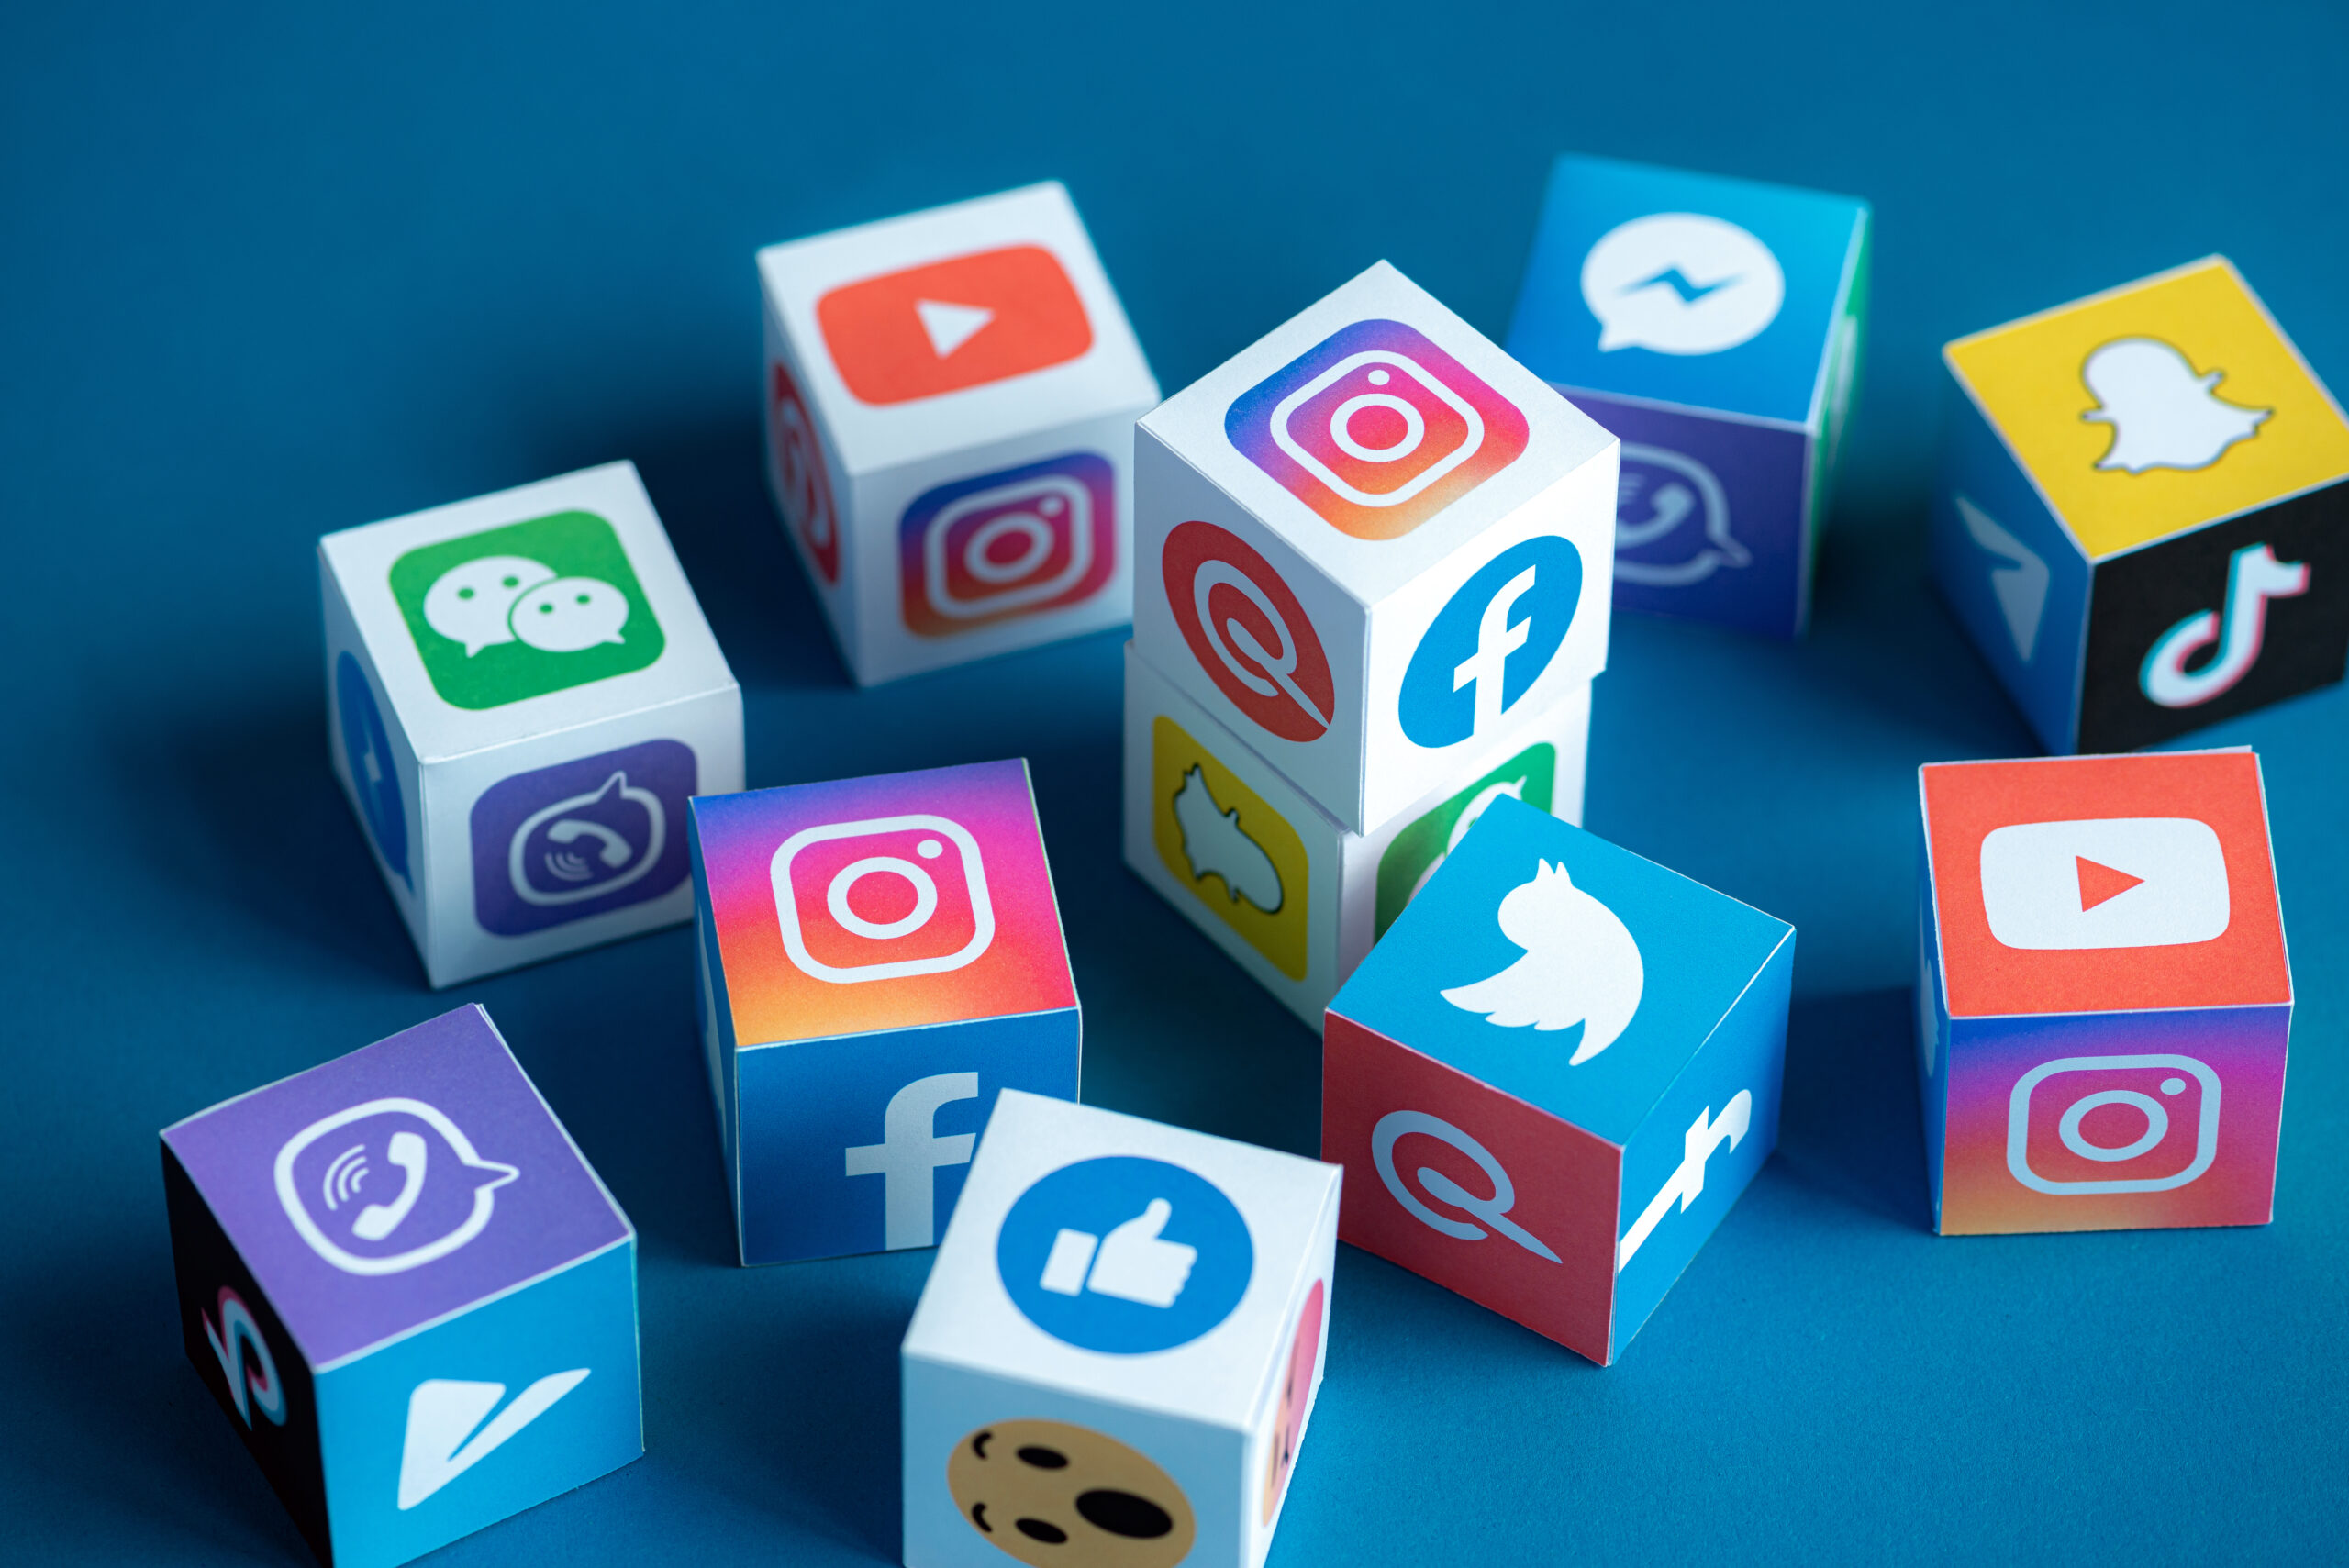 icons of popular social media apps appearing on a bunch of cubes, scattered on a table like dice